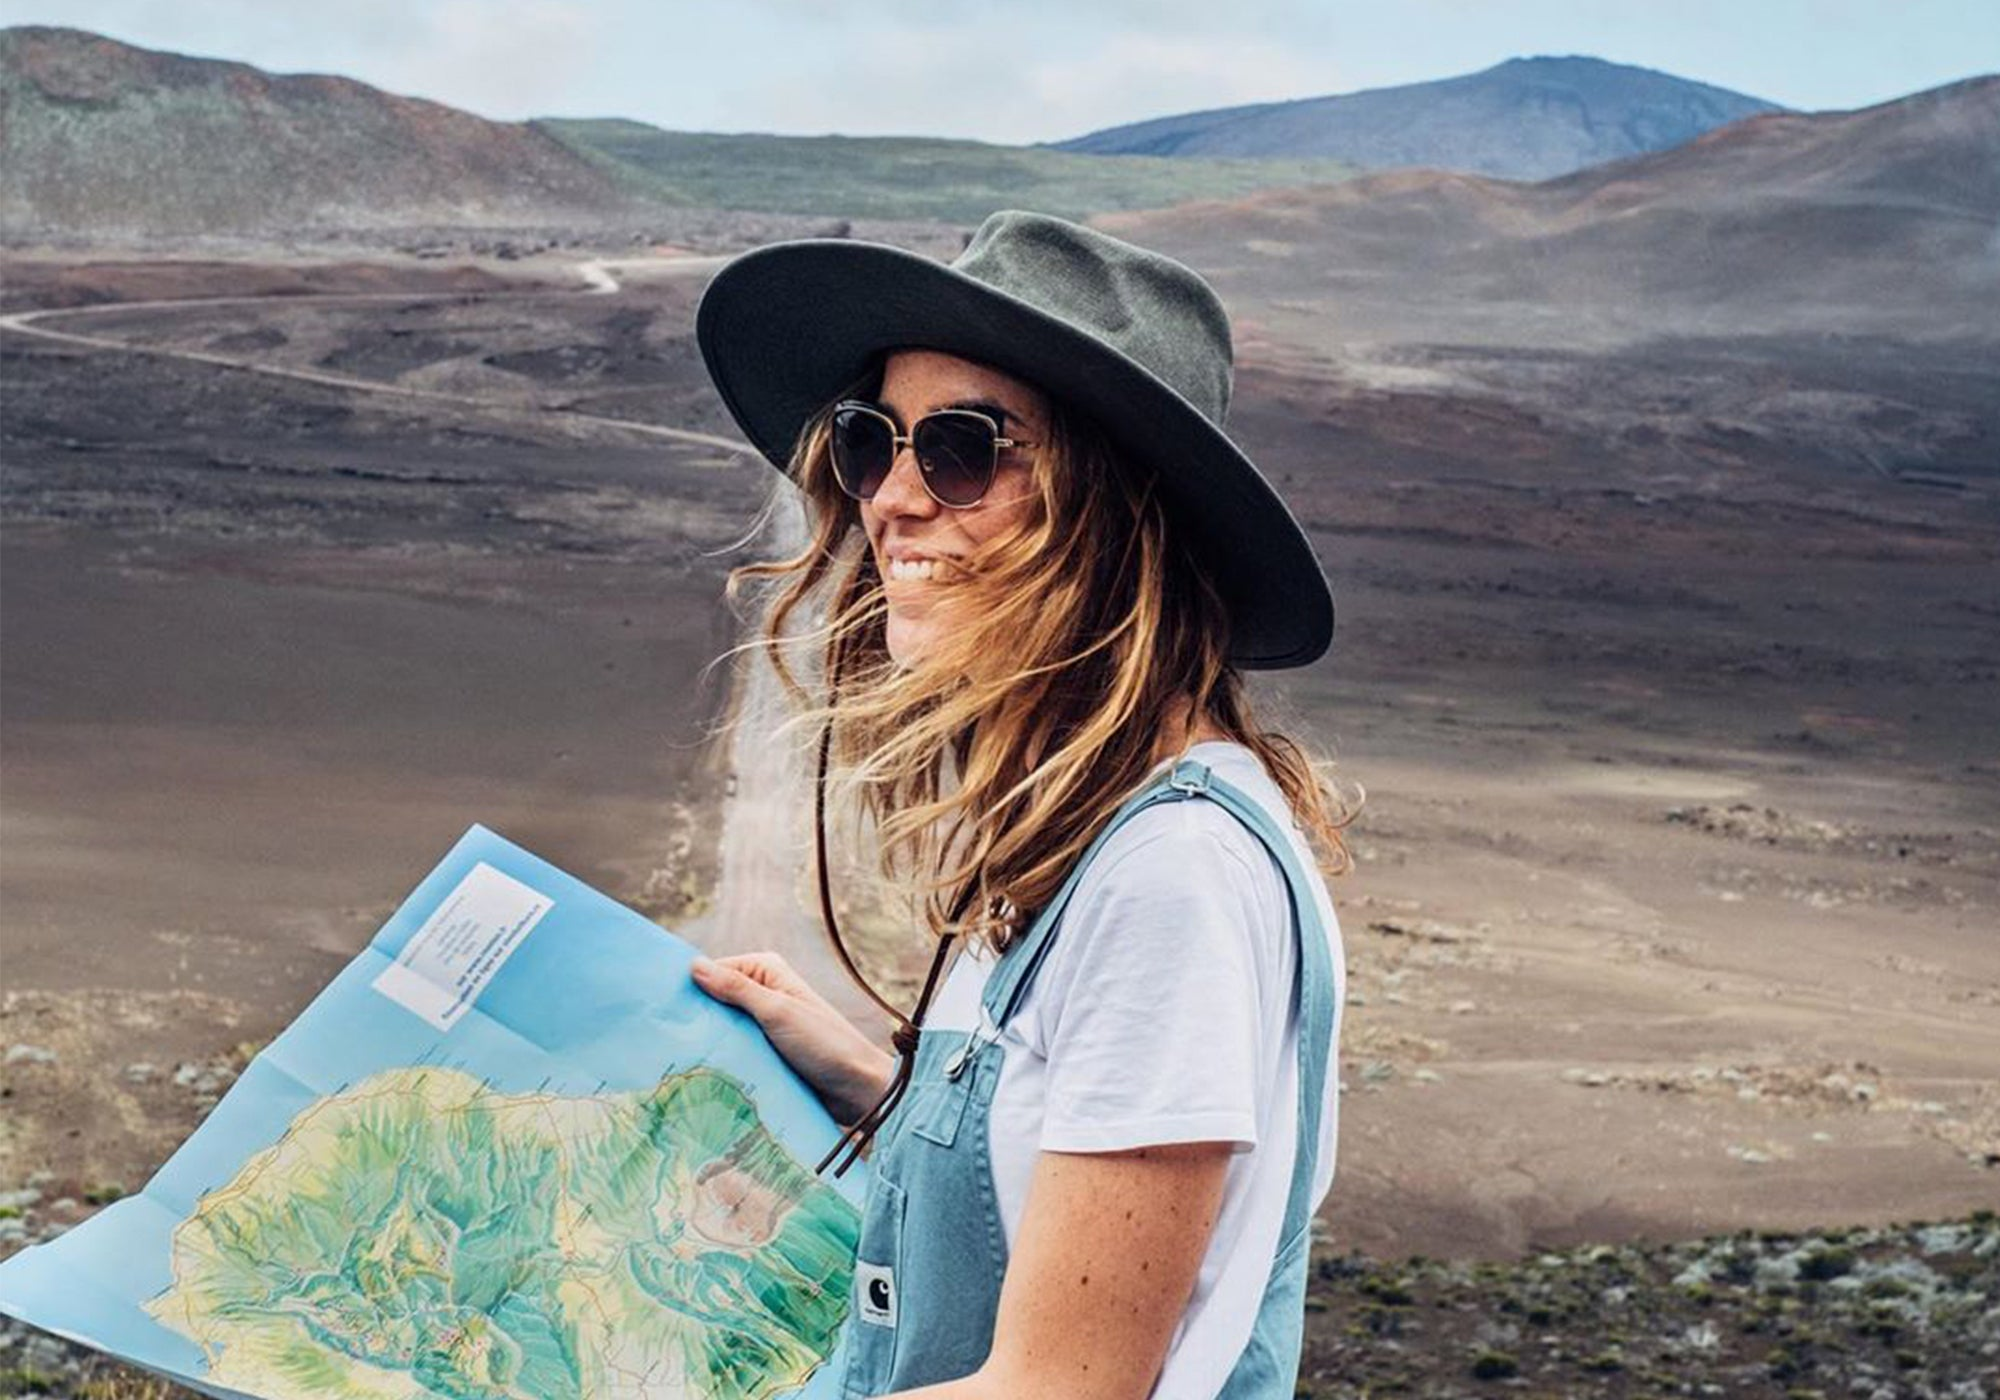 Female Adventures That Will Make Your Day